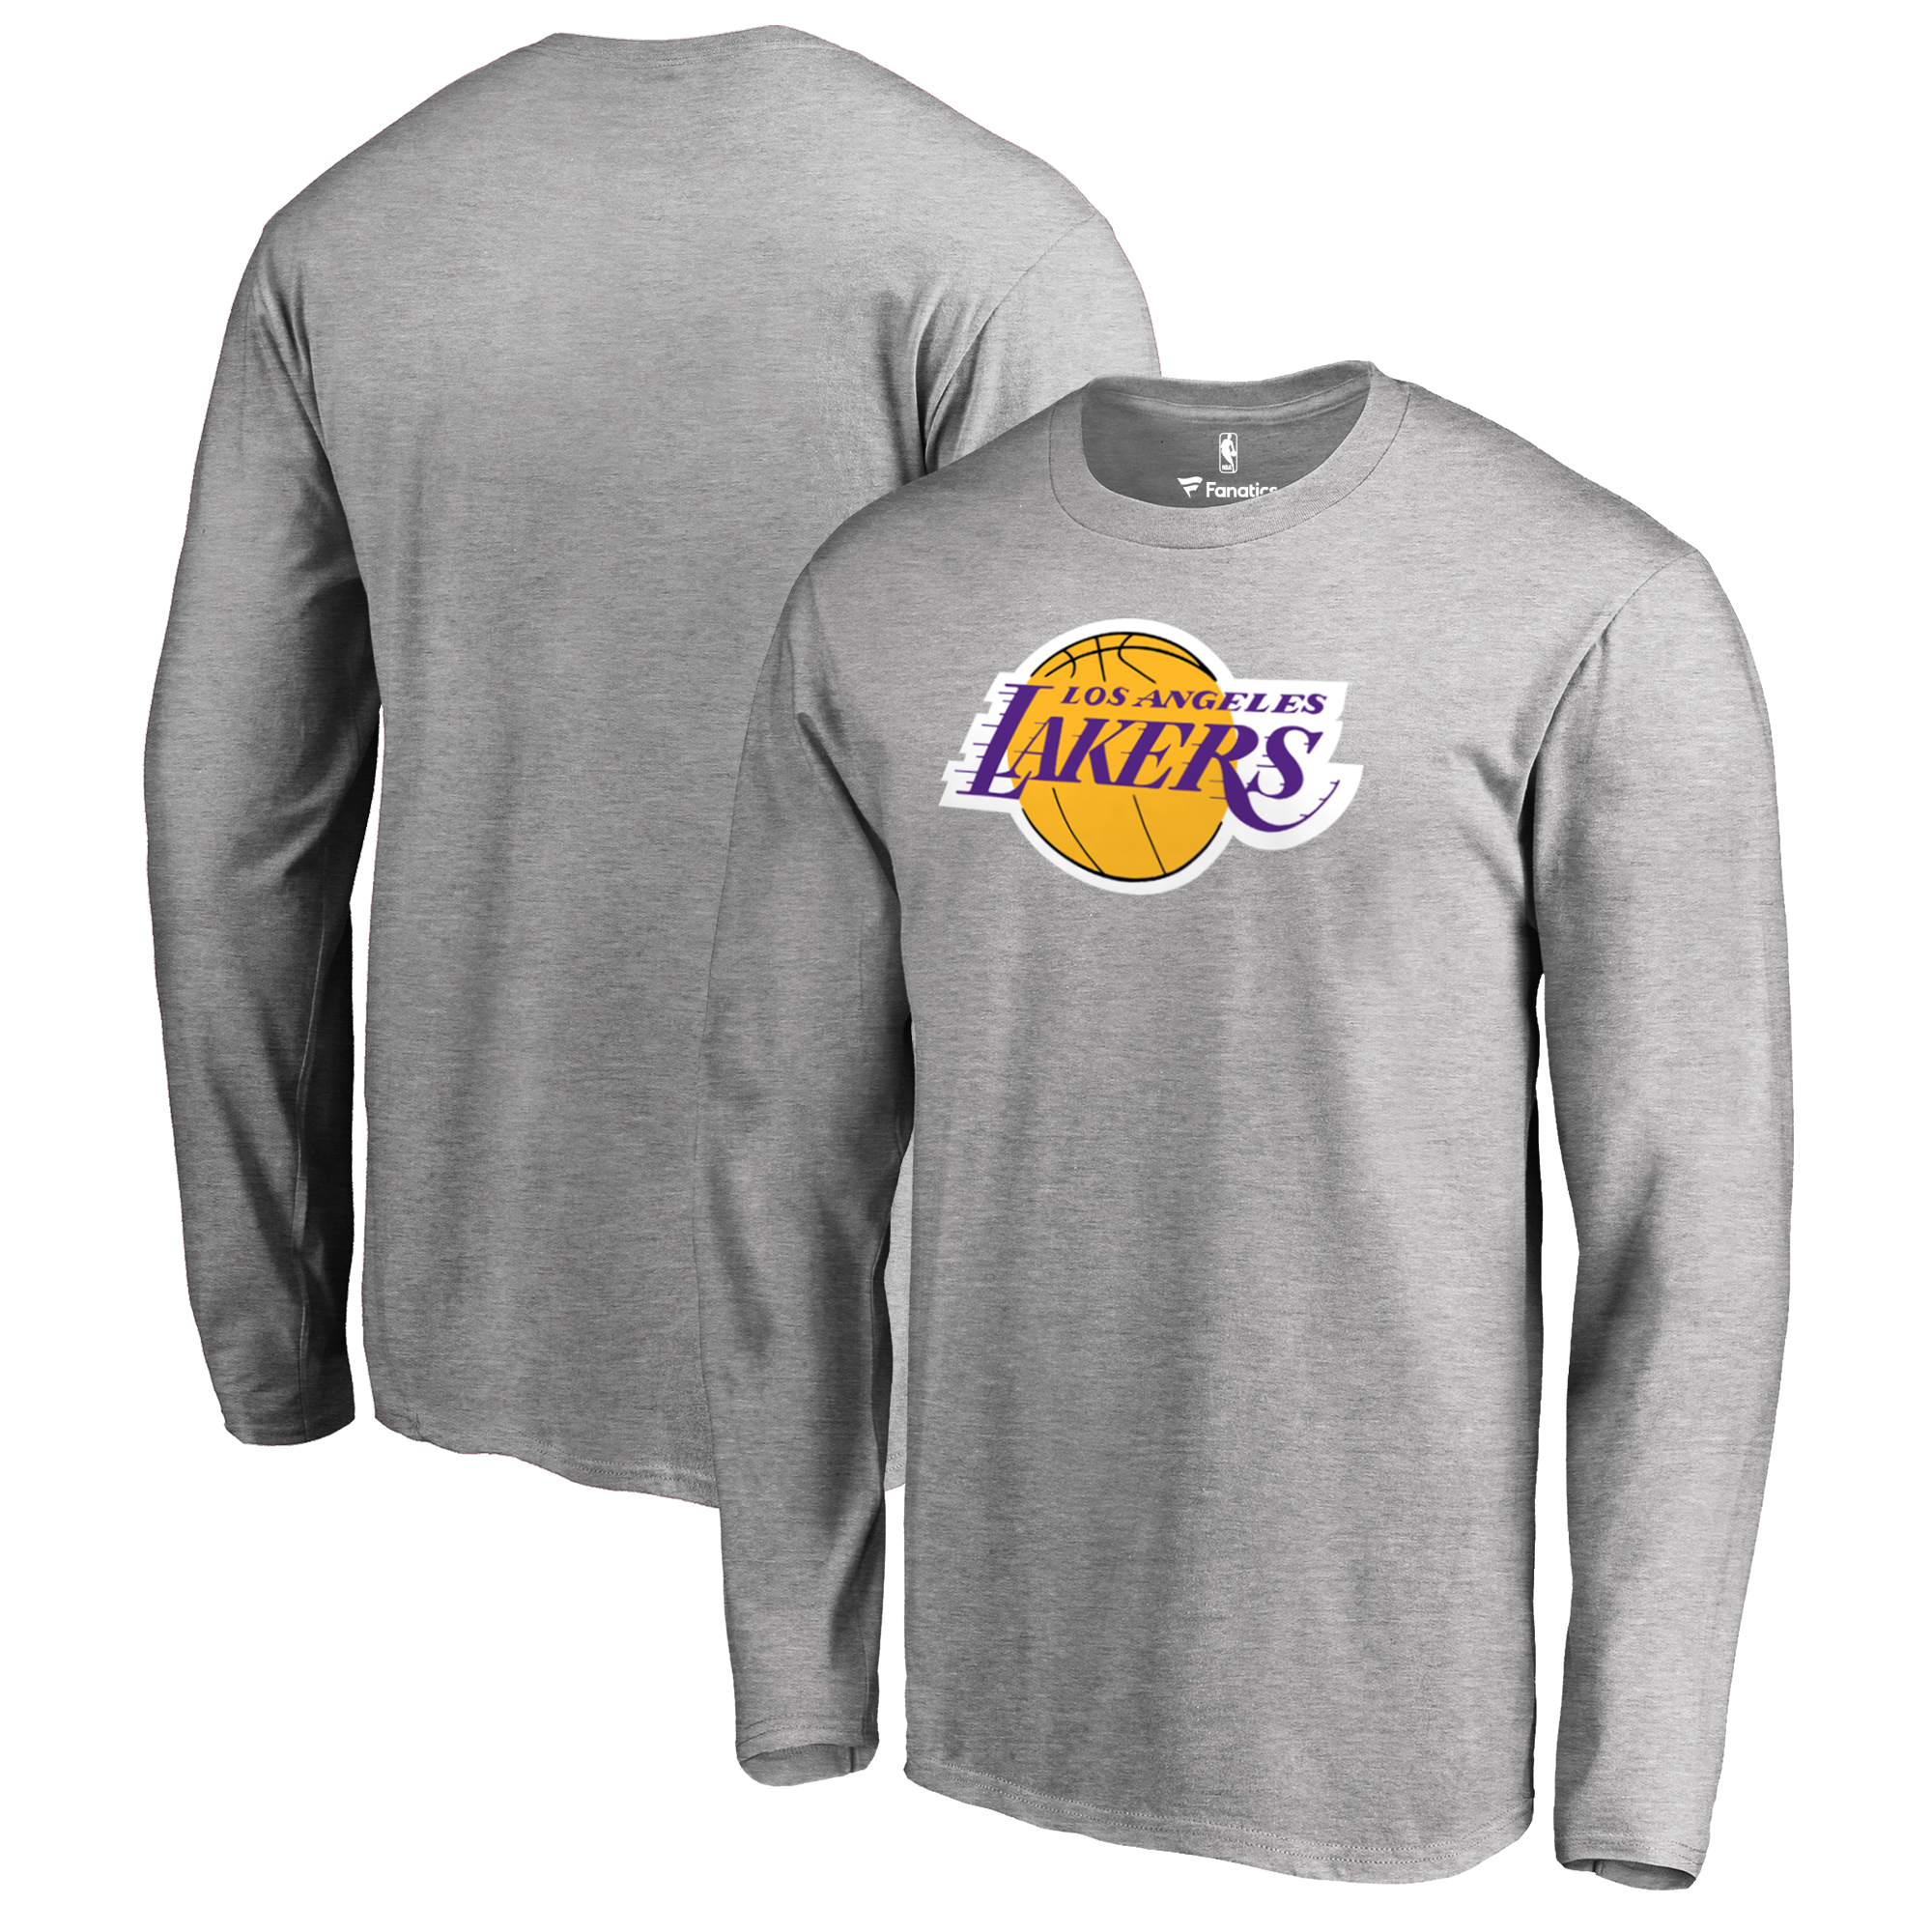 Los Angeles Lakers Fanatics Branded Big & Tall Primary Logo Long Sleeve T-Shirt - Heathered Gray